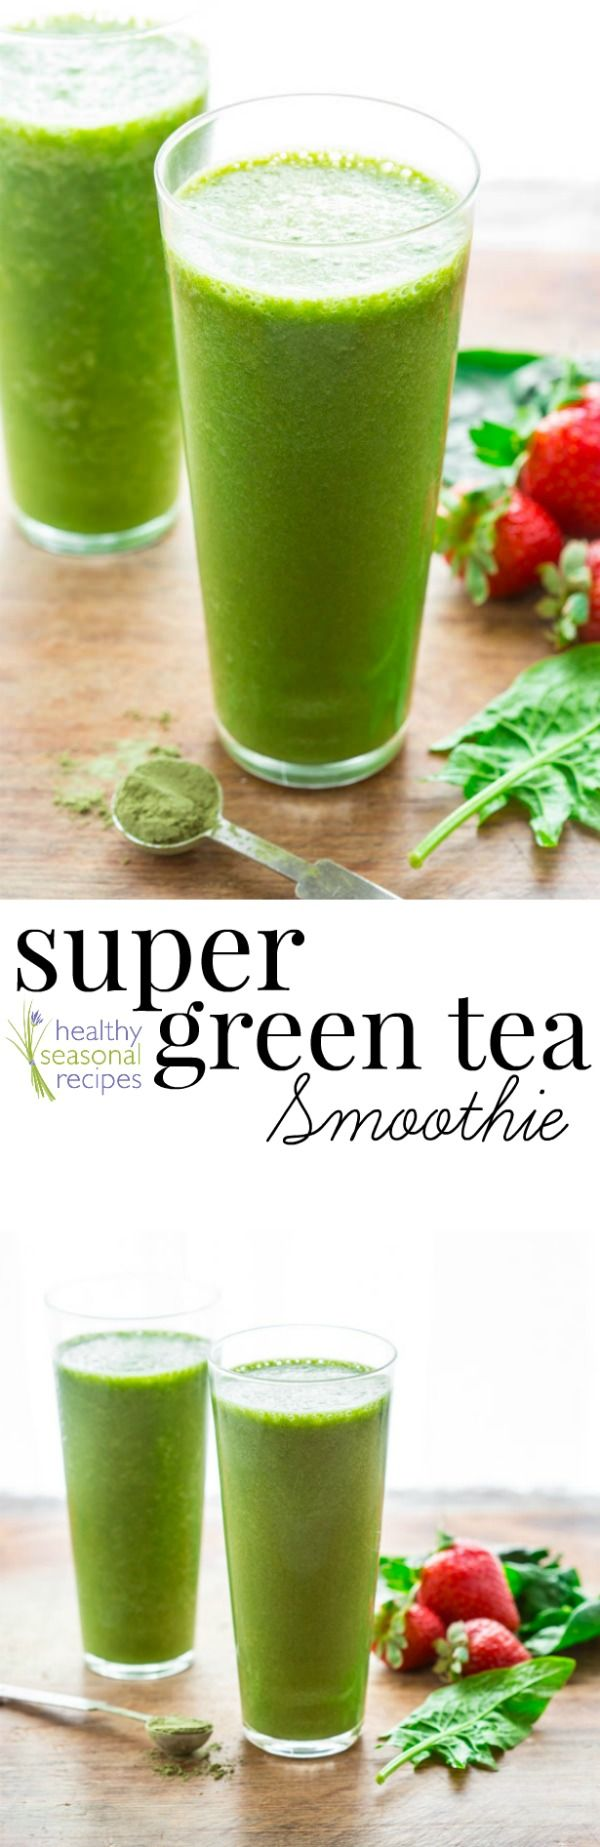 super green tea antioxidant smoothie - Healthy Seasonal Recipes